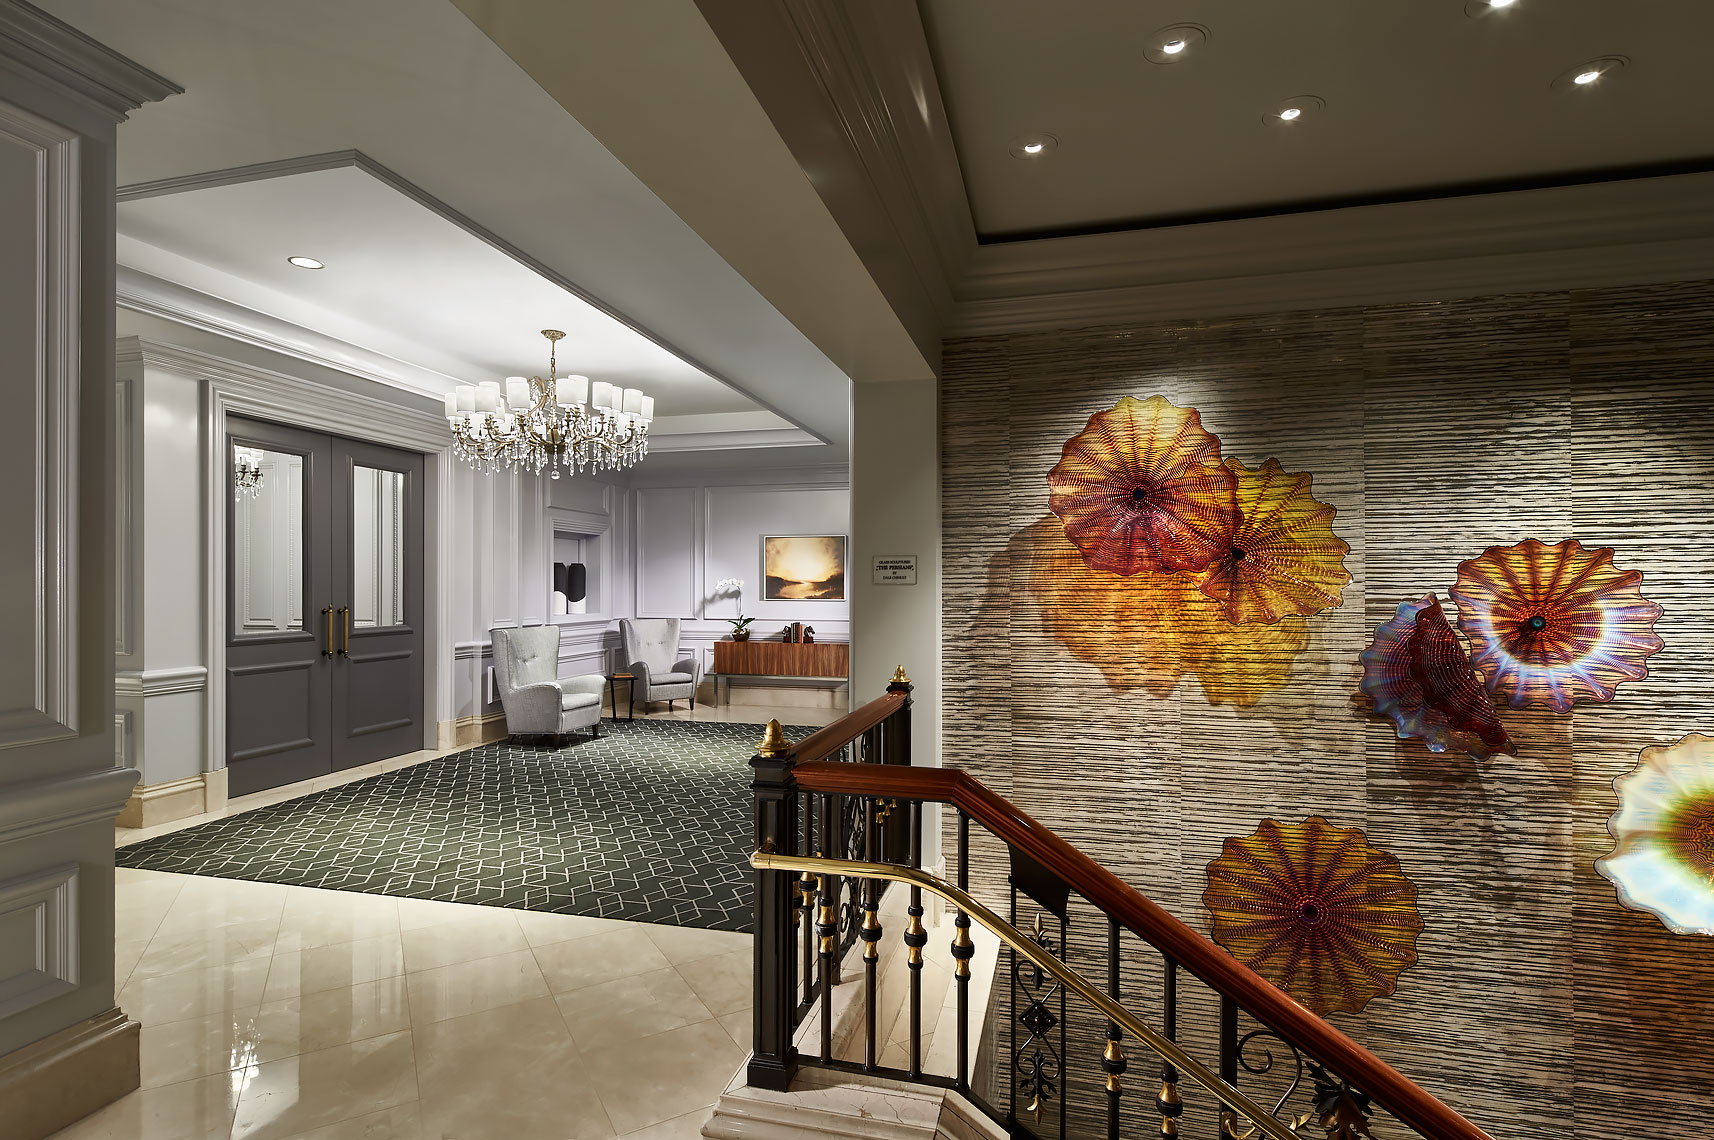 HOTELS-RC45-Ritz-Carlton-DC3